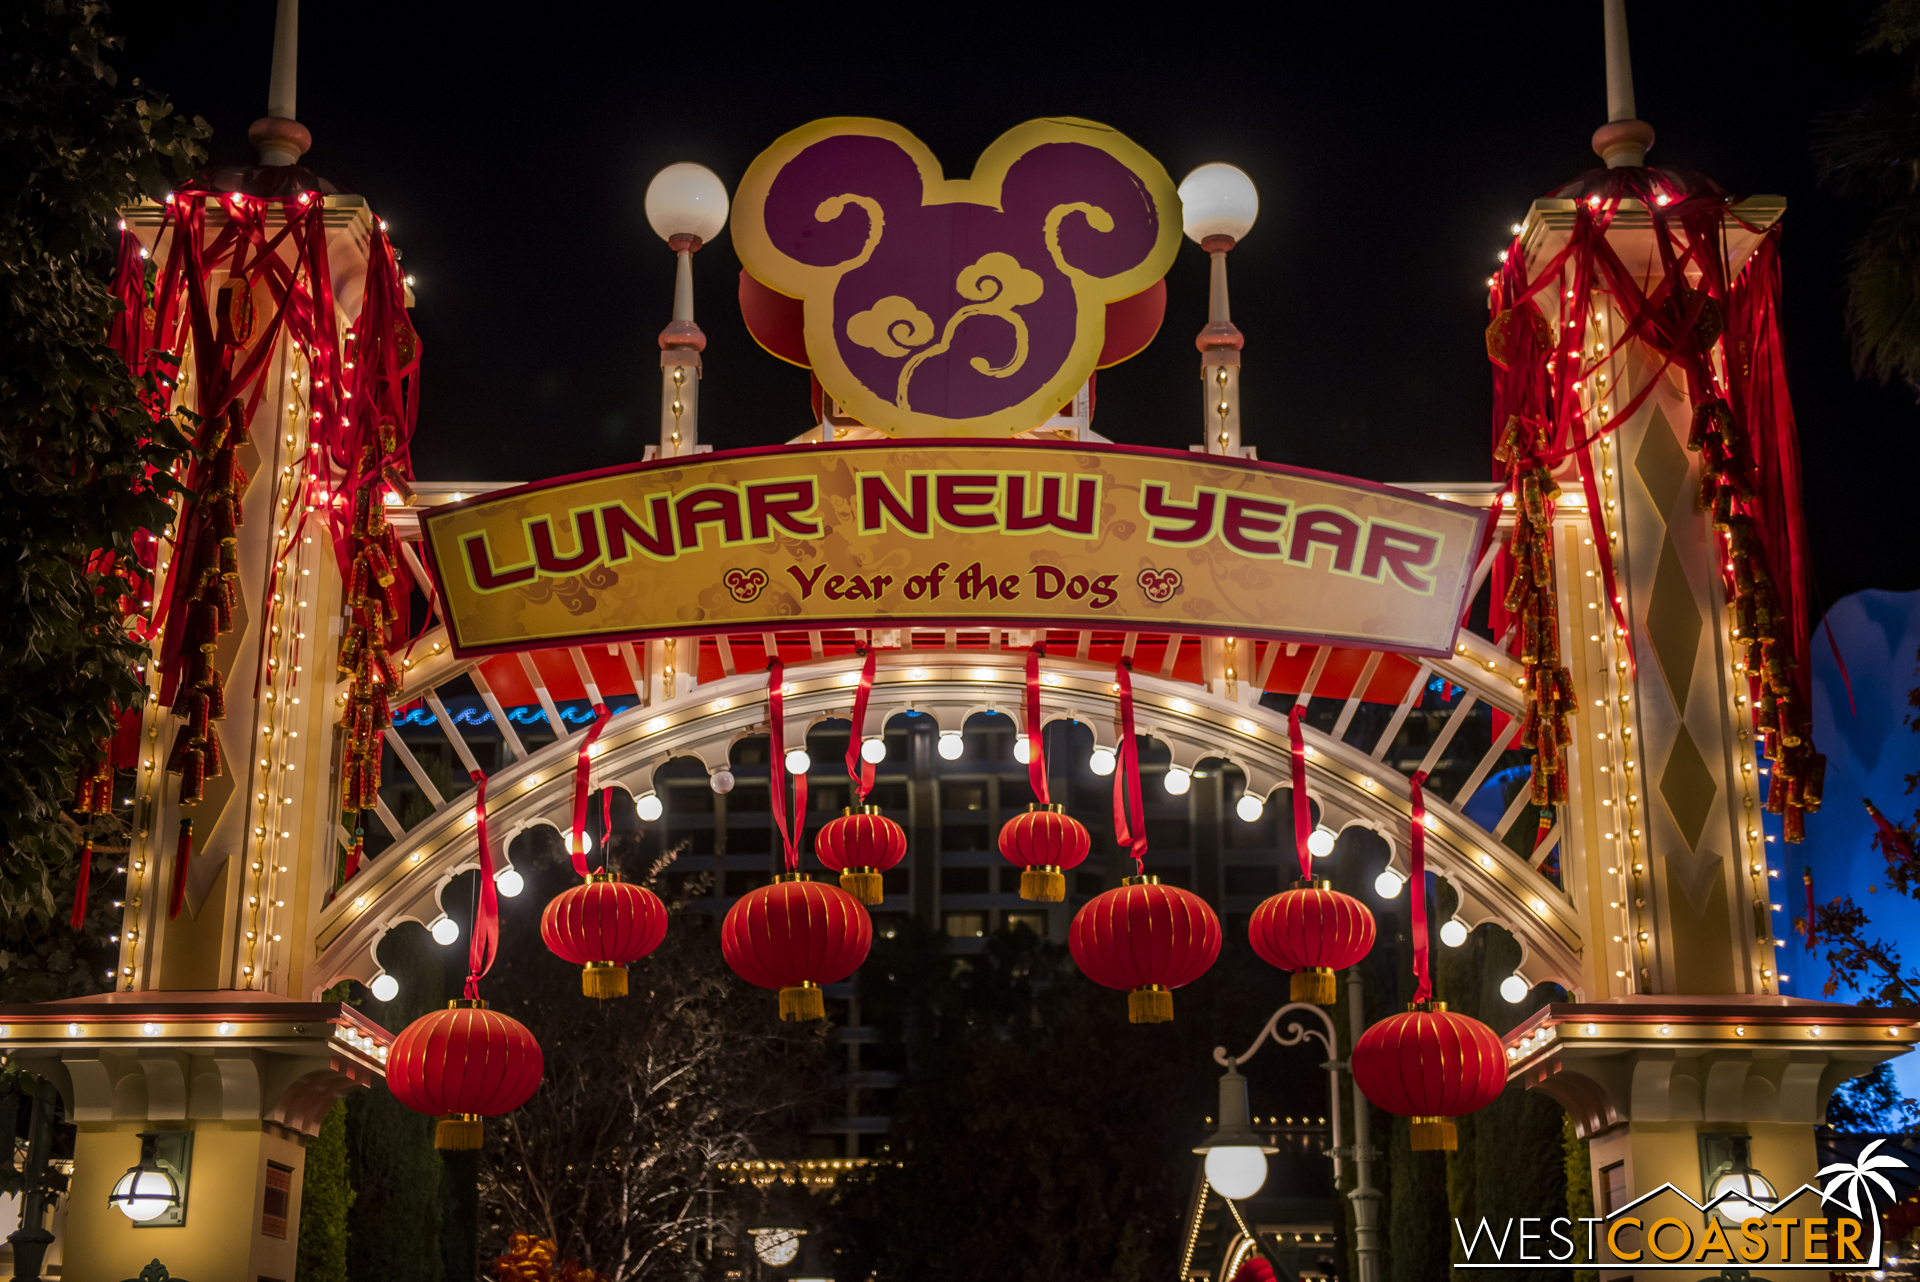 Happy year of the dog! The actual Lunar New Year falls on Friday, February 16 this year.